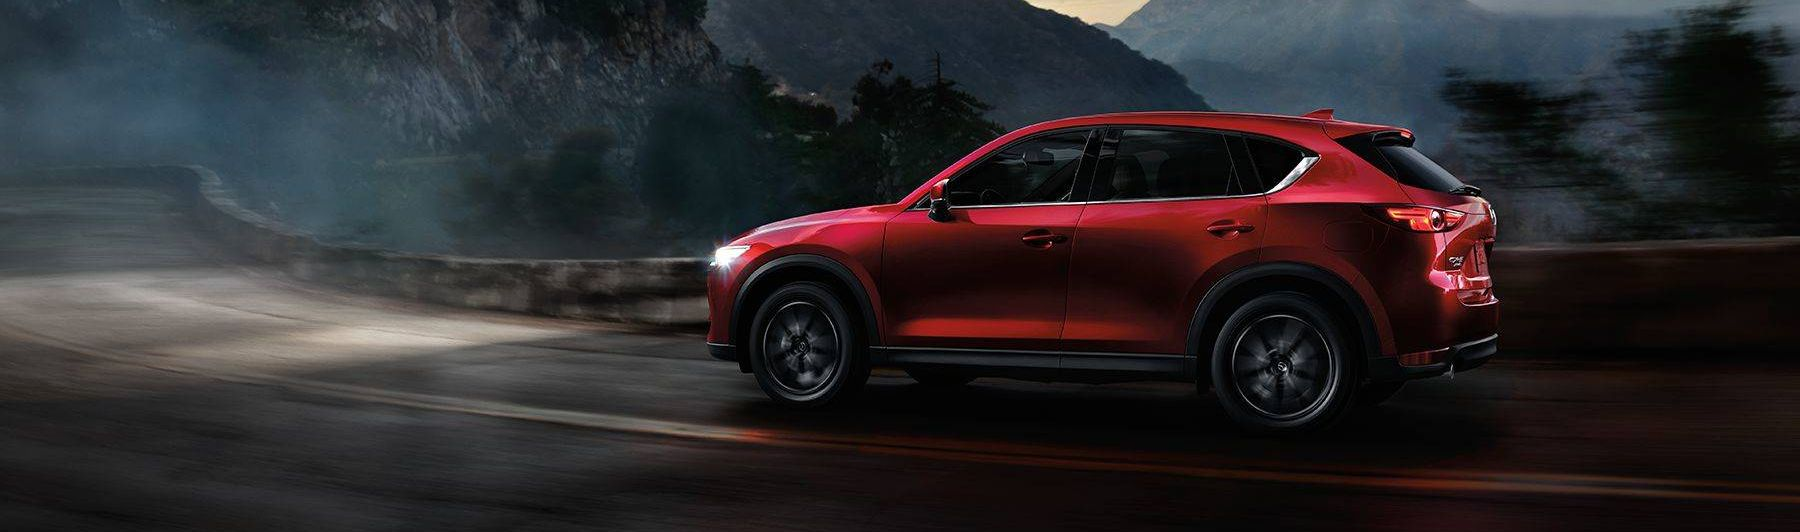 2018 Mazda CX-5 Leasing near Rockville, MD